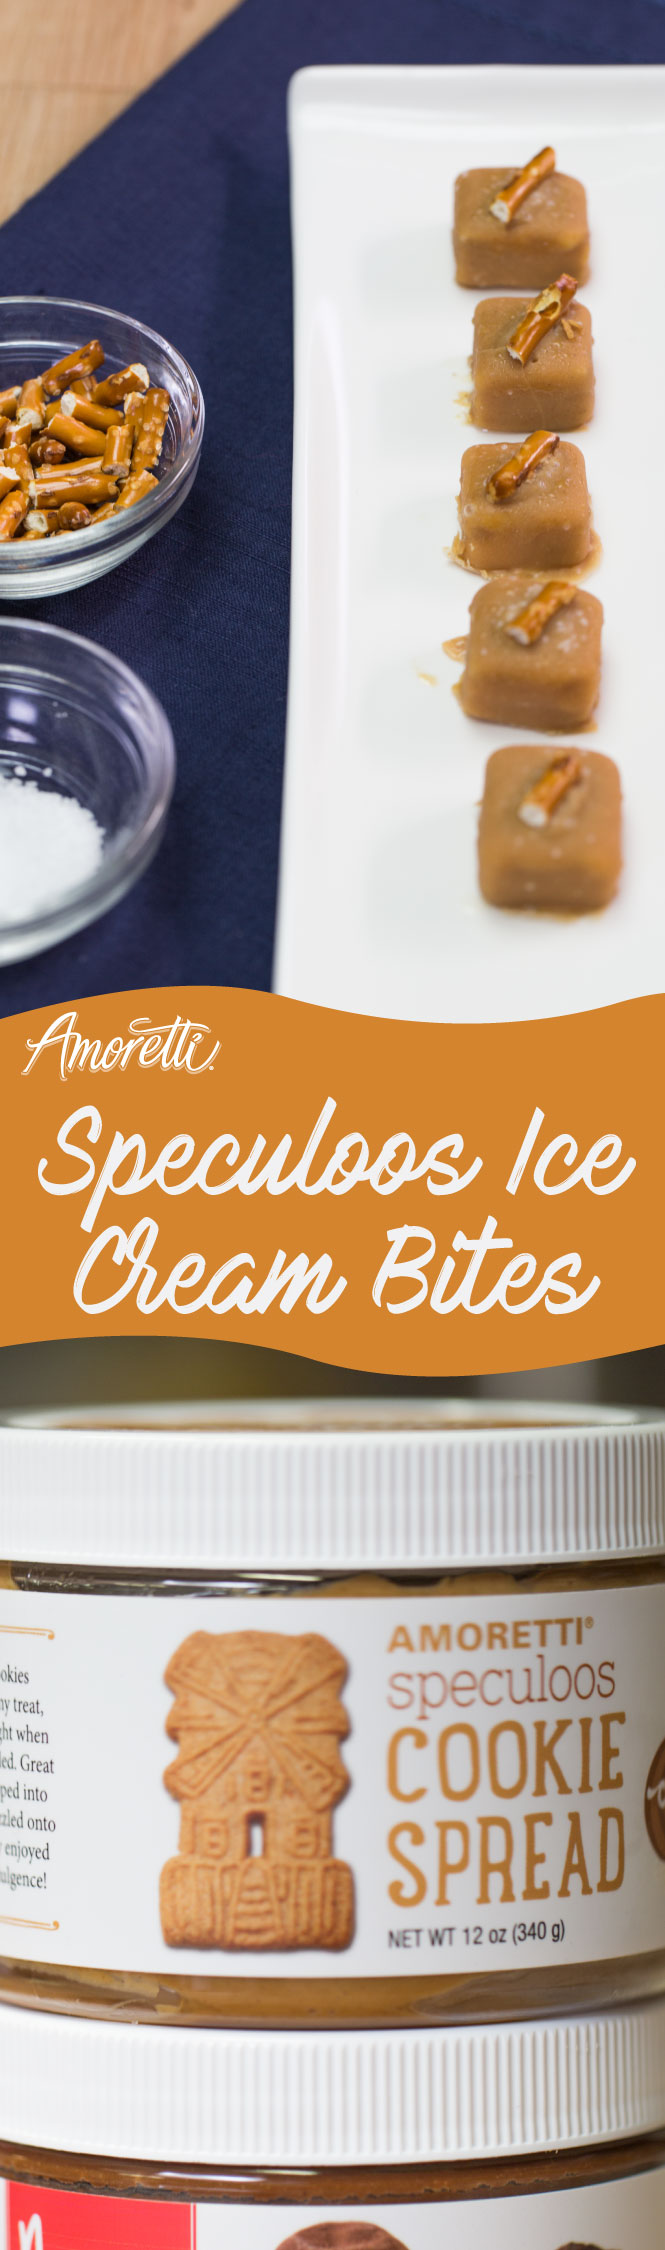 Enjoy these bite-sized morsels of ice cream goodness!